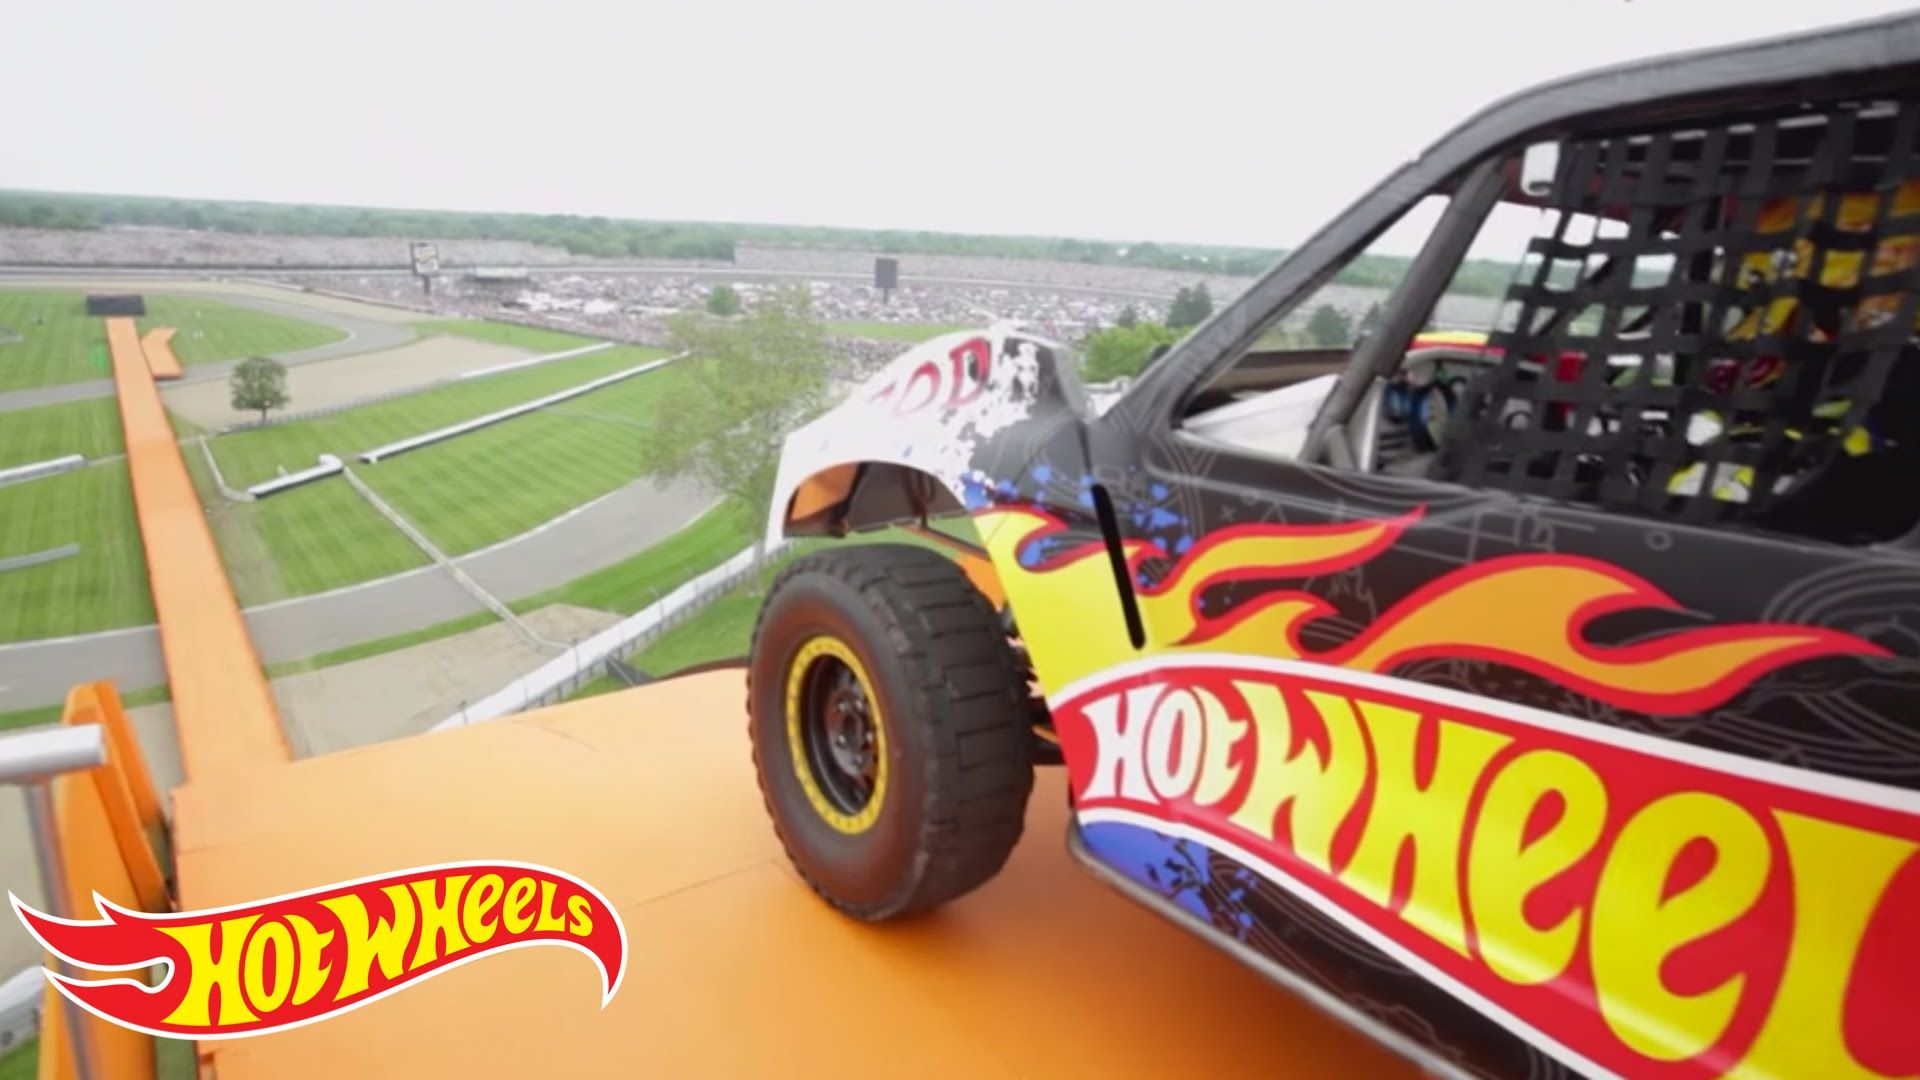 The Yellow Driver of Team Hot Wheels breaks the world